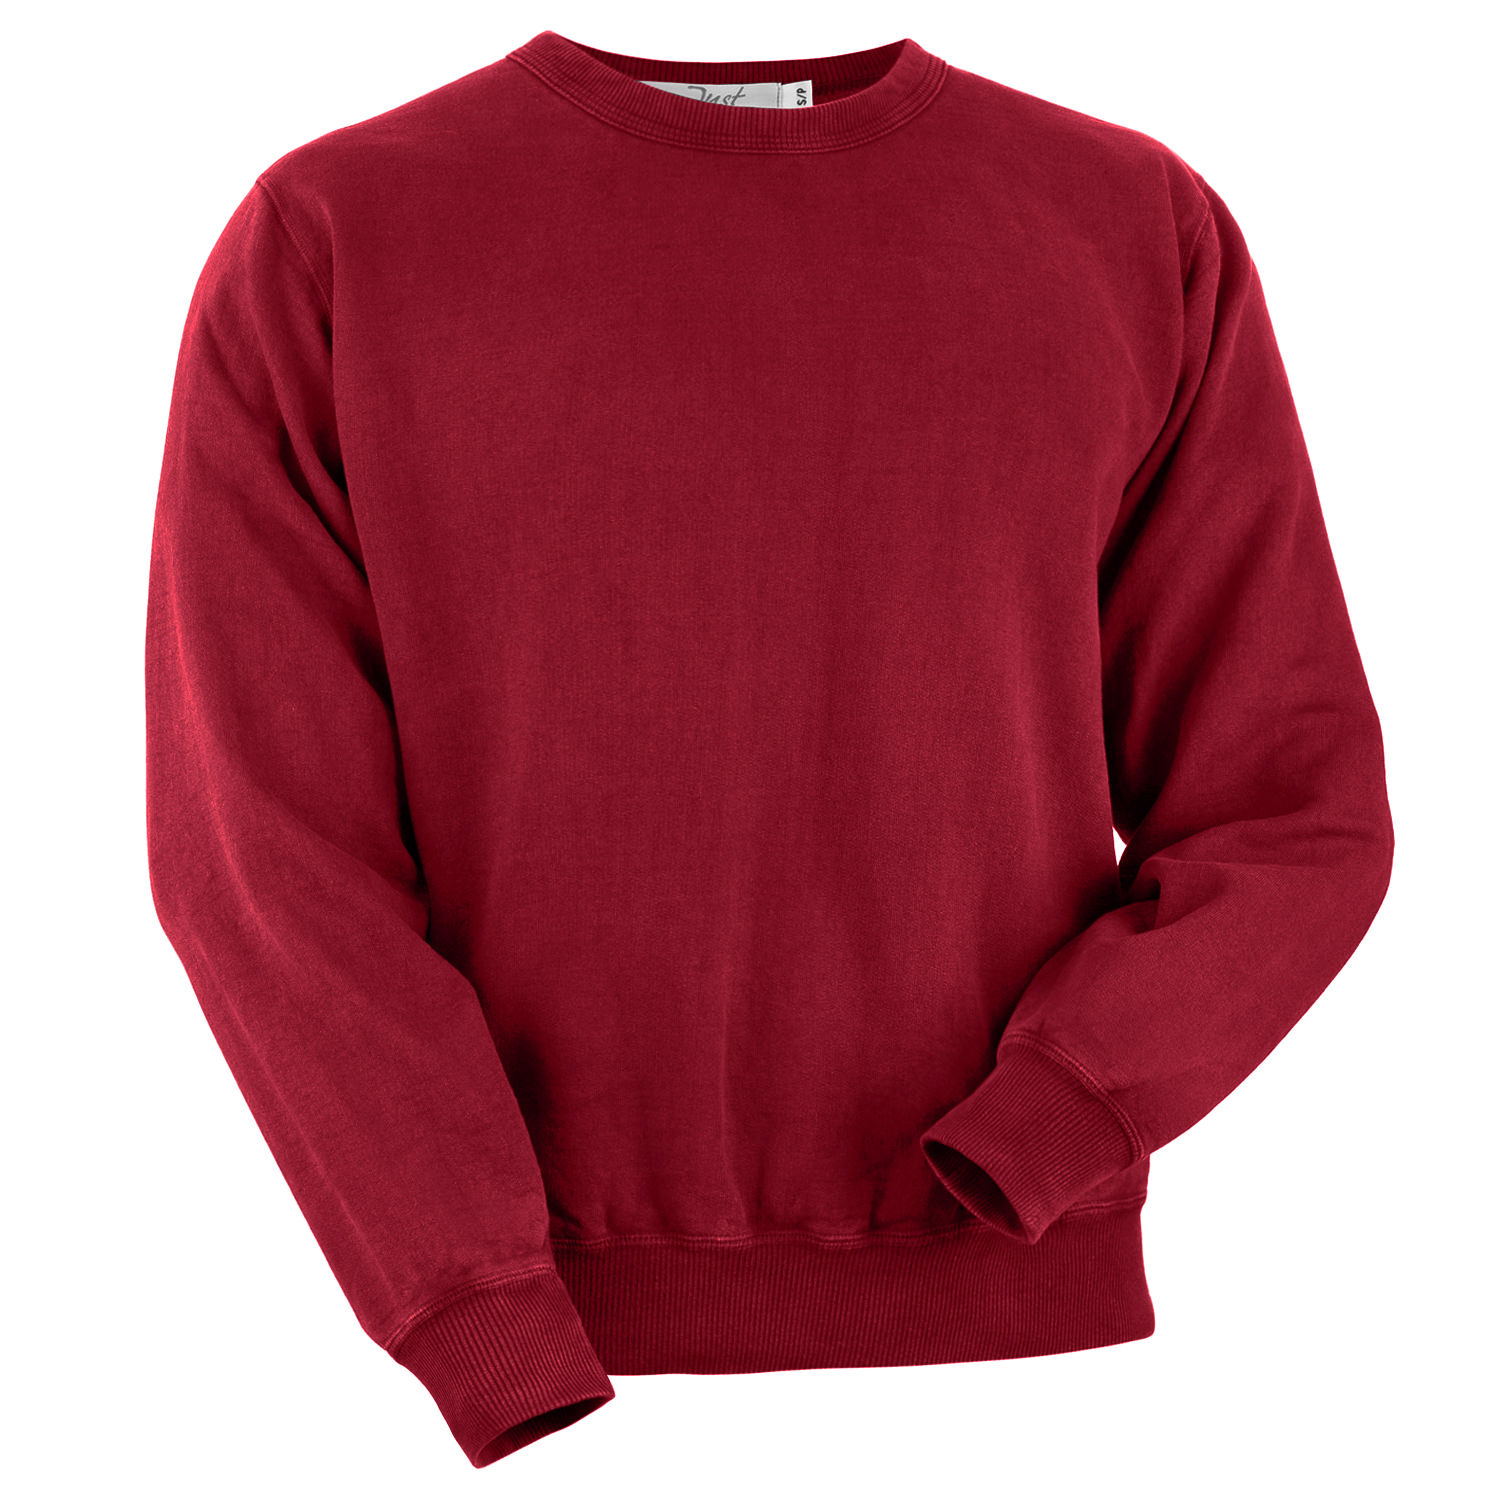 Crewneck Ruby Red 100% Cotton